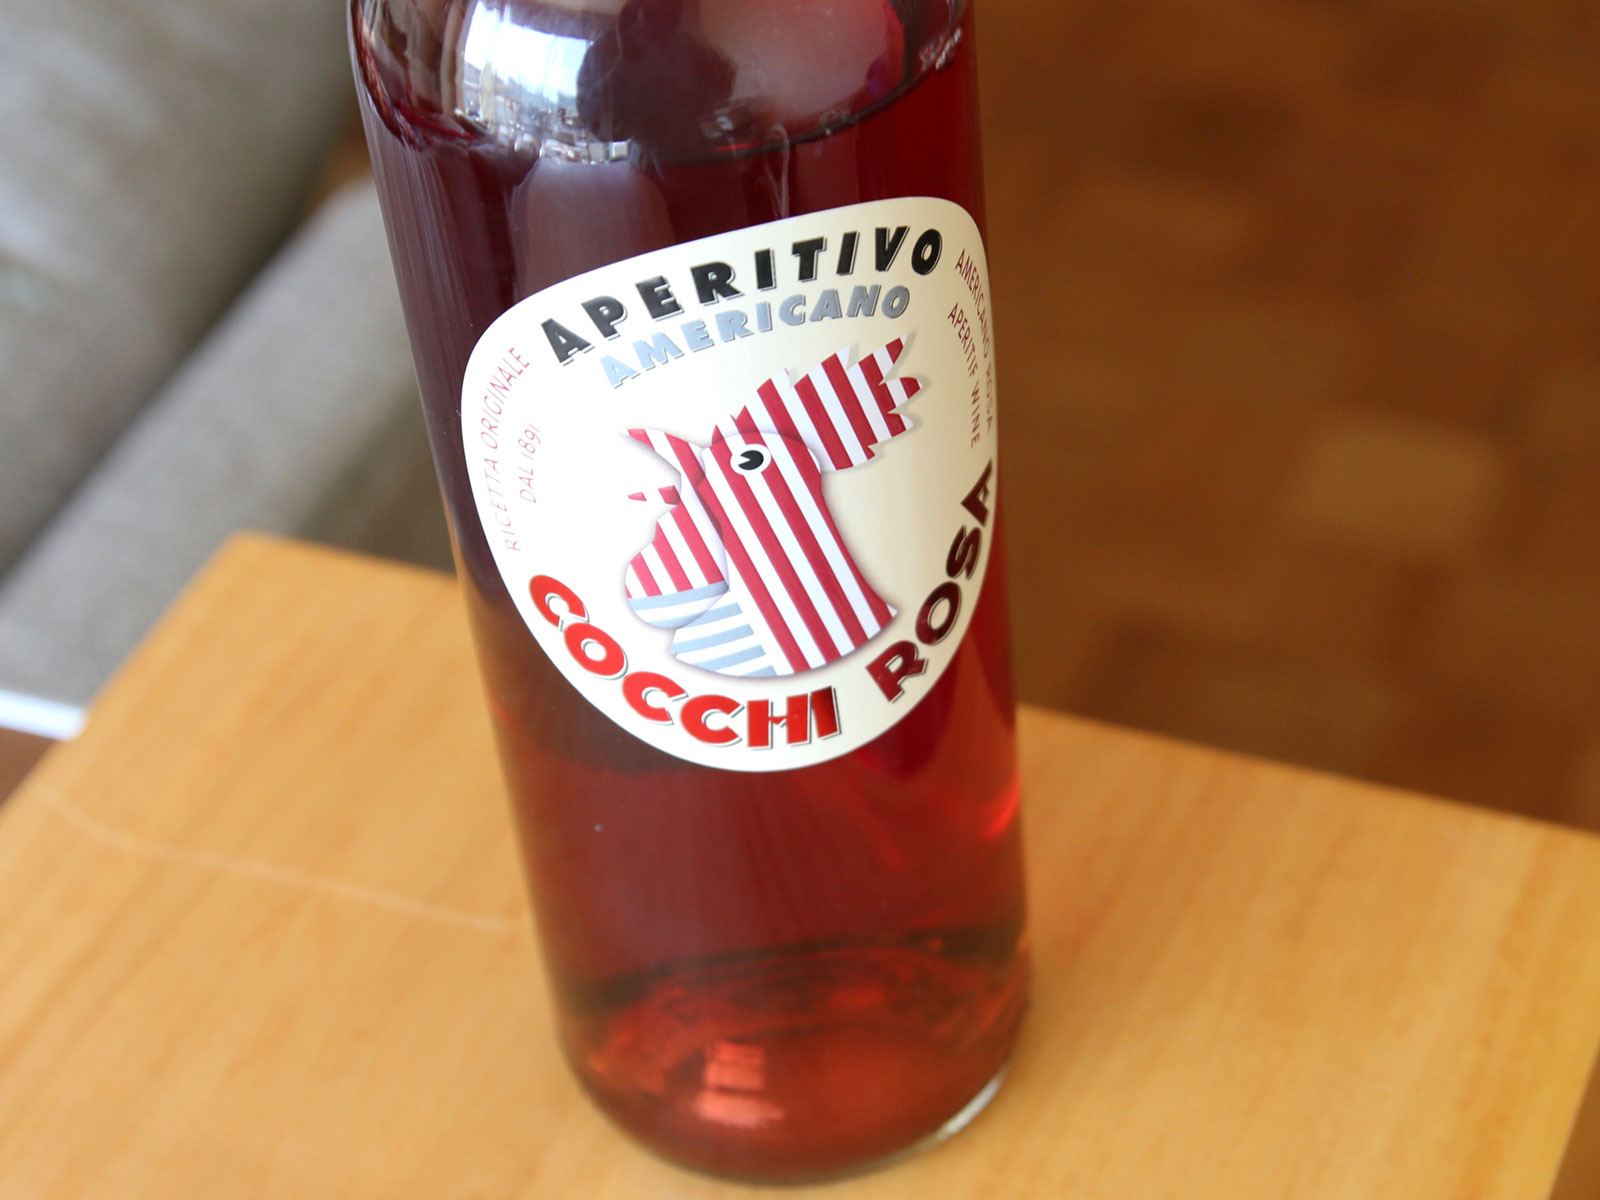 3 Good Reasons Why Cocchi Rosa Should Always Be in Your Fridge